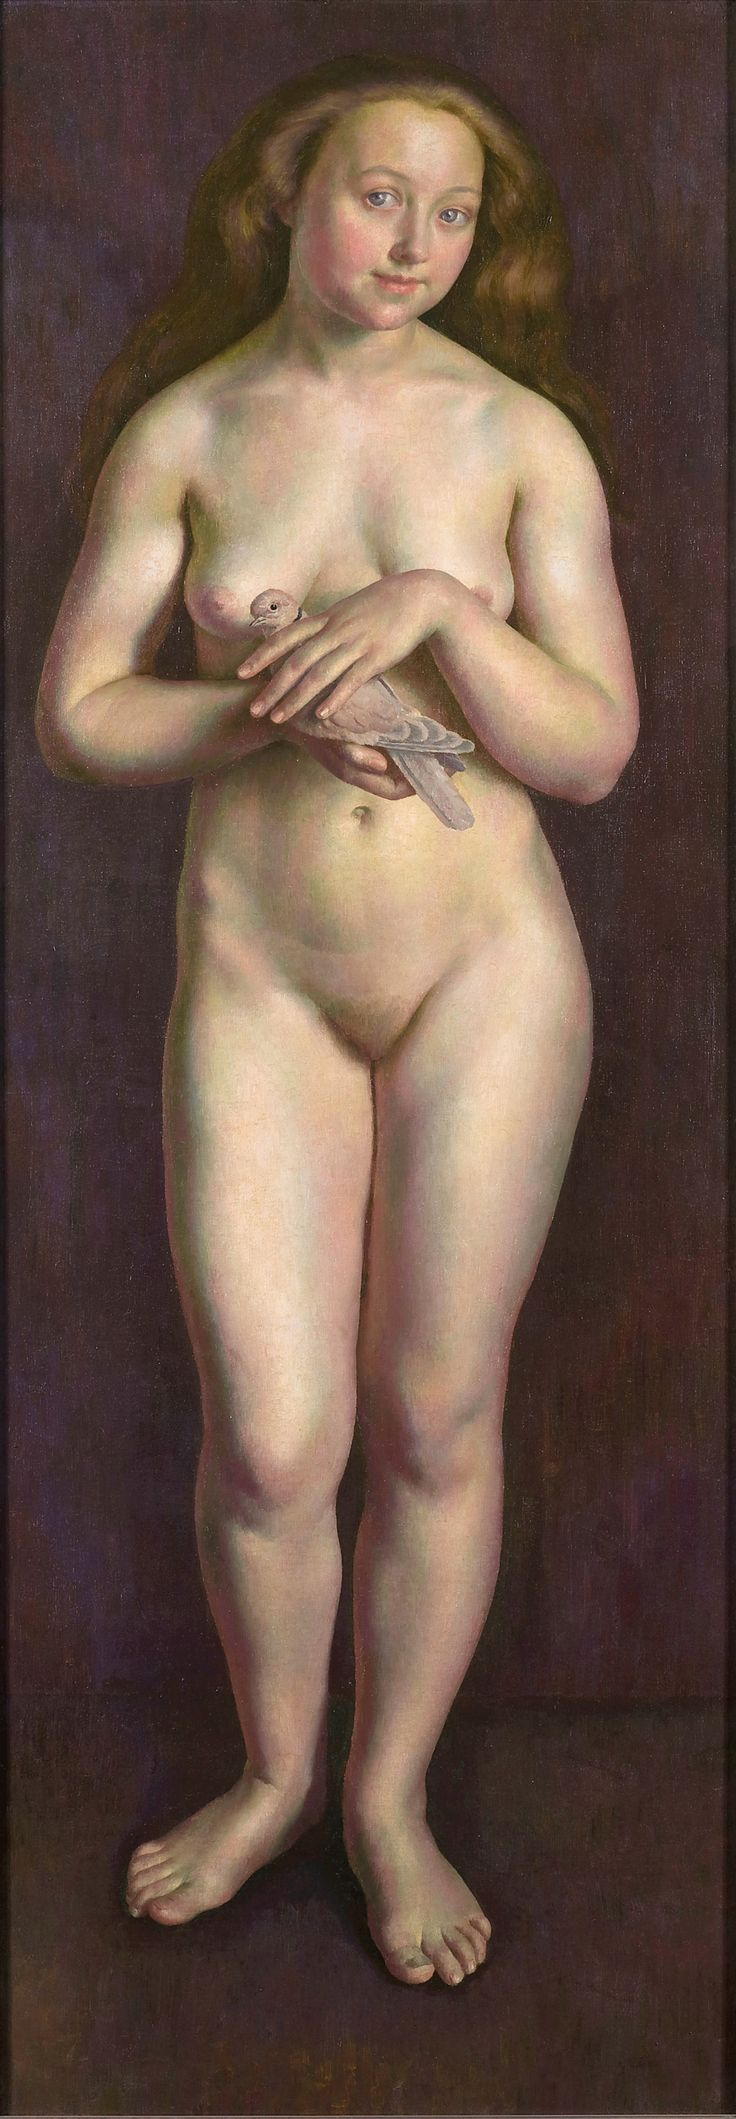 dod procter  | Virginal by DOD PROCTOR - The Association of Art and Antique Dealers ...